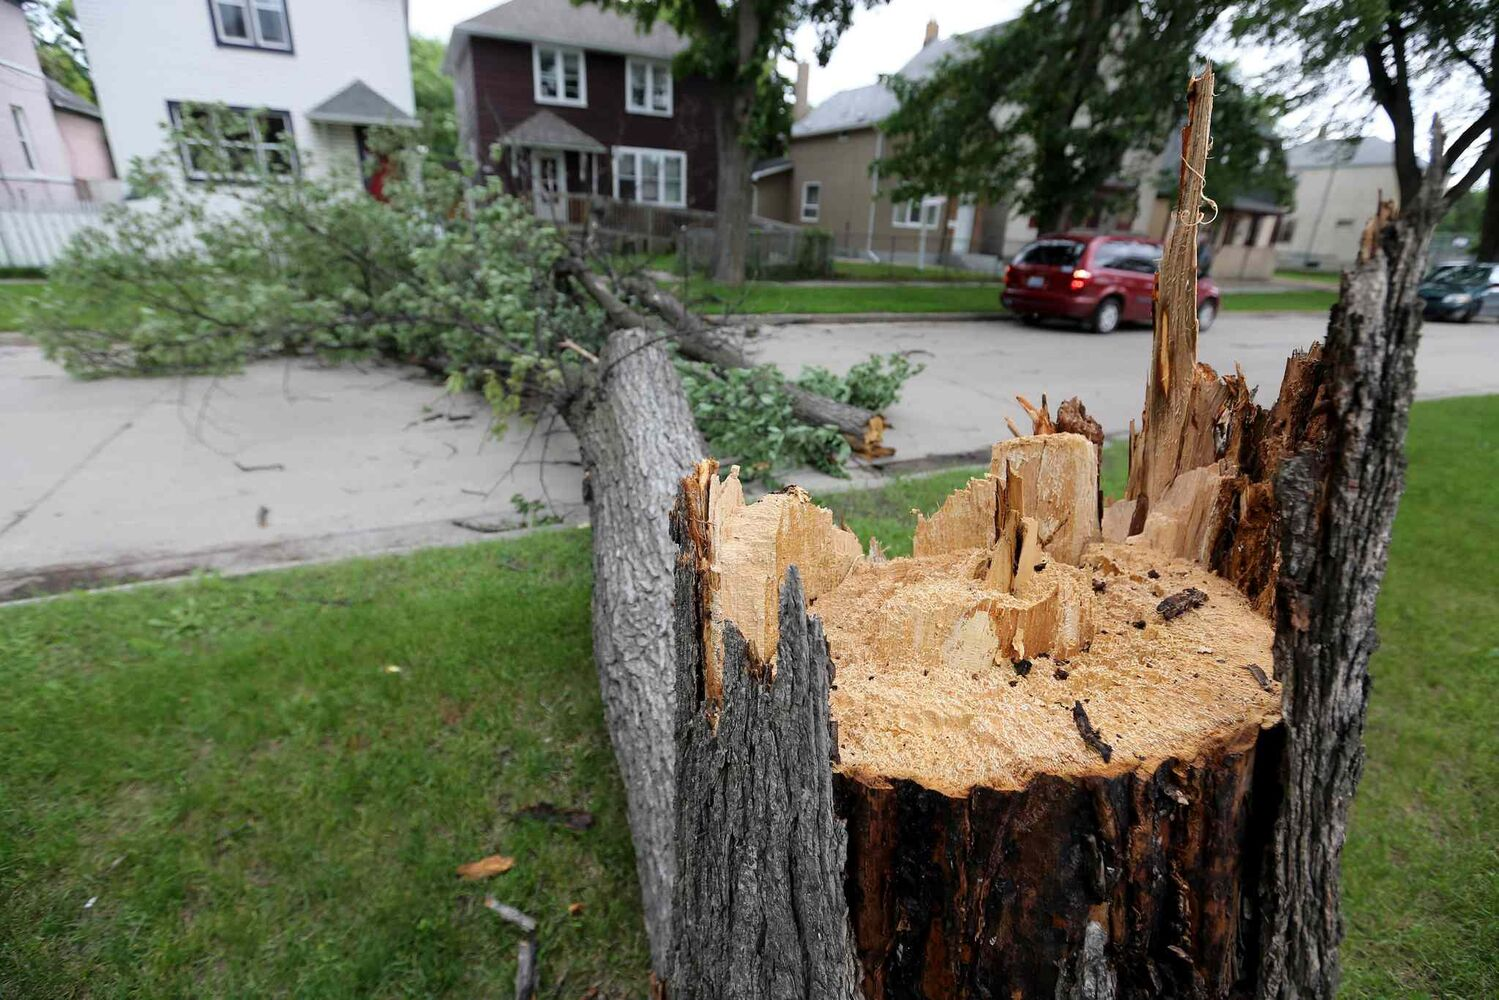 A large tree broken at the trunk lays across Pritchard Avenue between Charles and Aikens after strong winds overnight, Sunday, June 29, 2014.  (Trevor Hagan / Winnipeg Free Press)